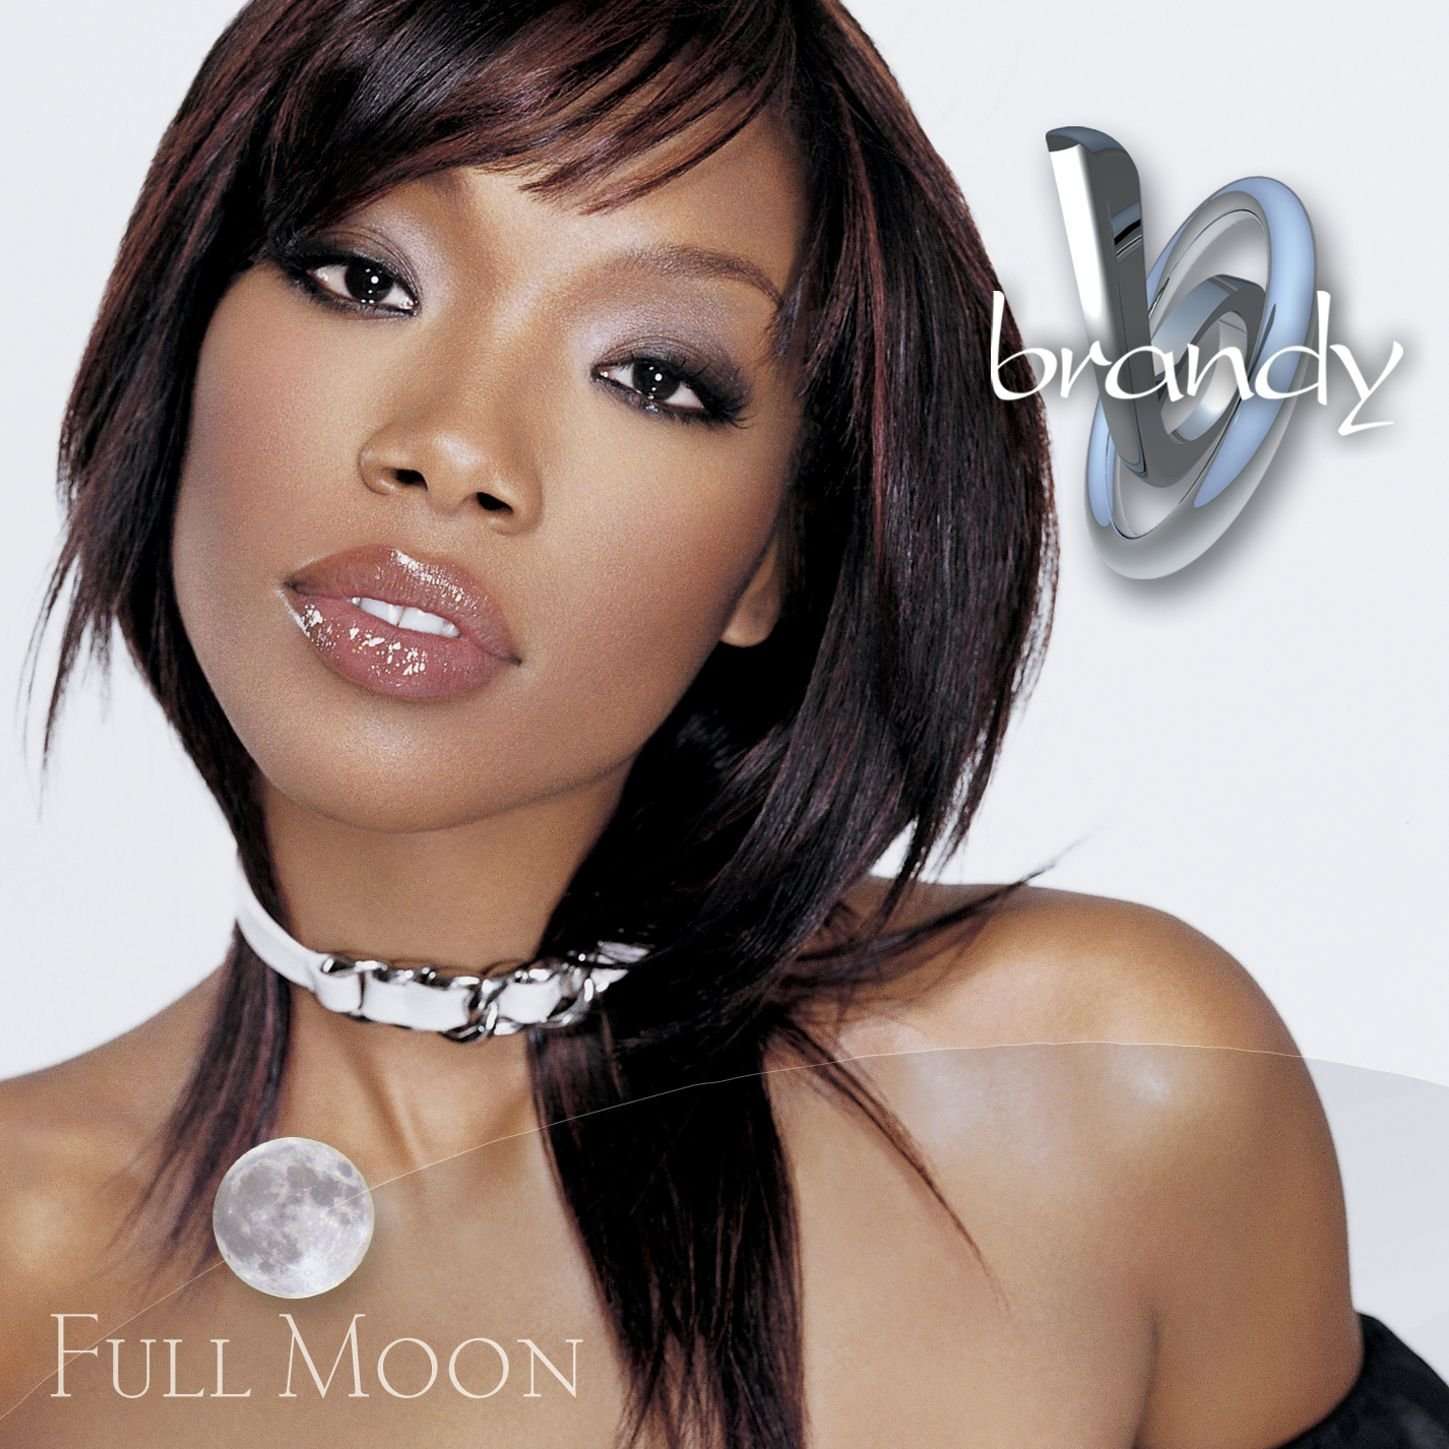 Brandy, Full Moon